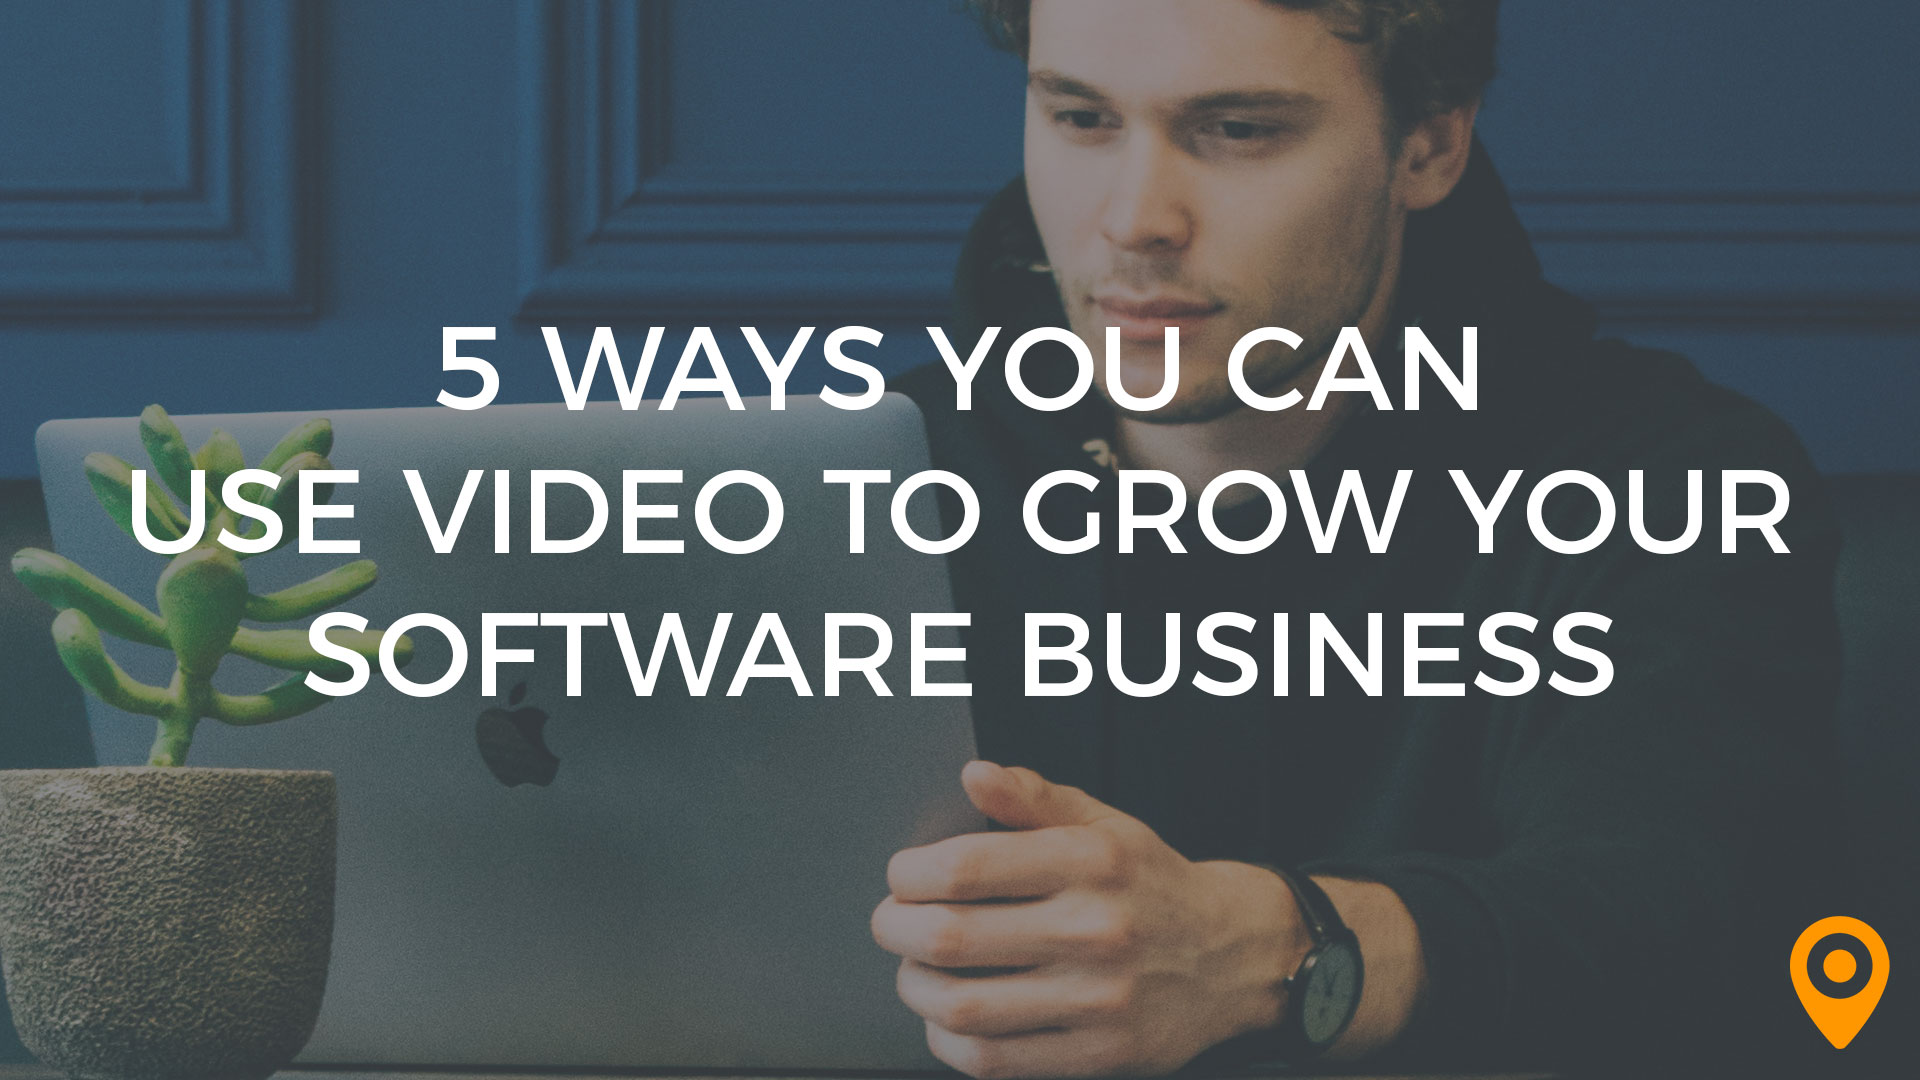 5 Ways You Can Use Video to Grow Your Software Business